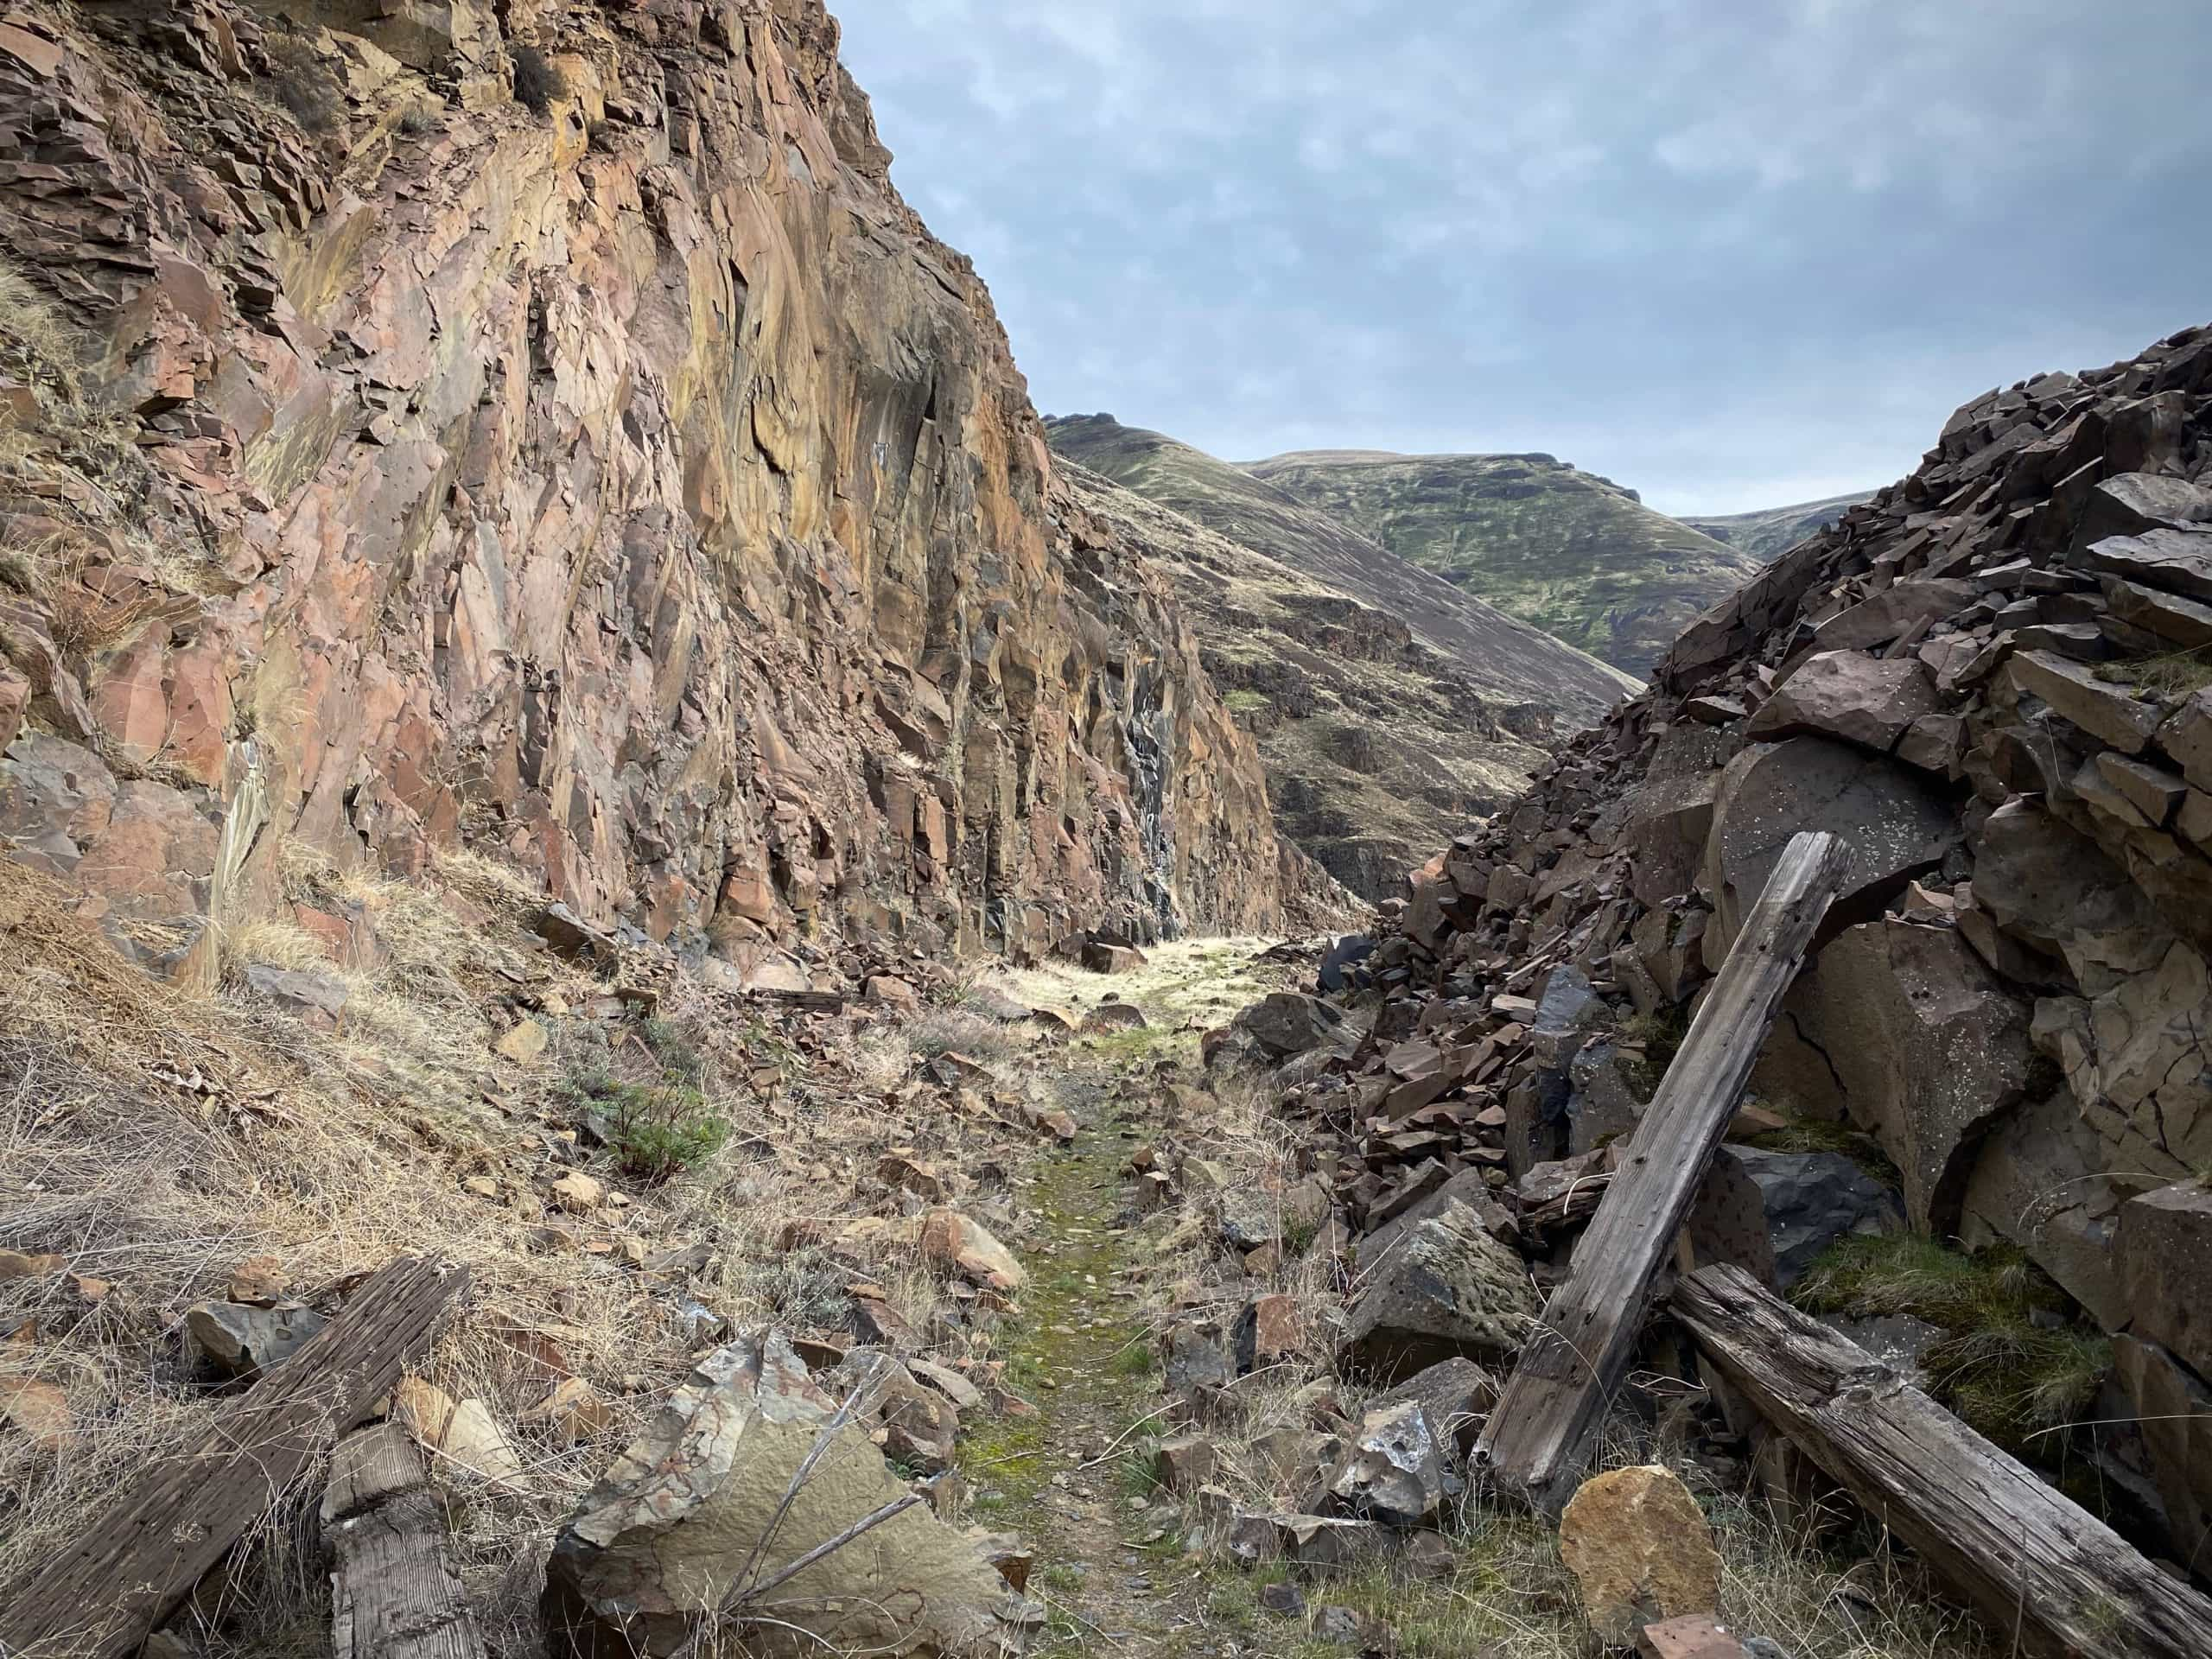 One of the single track sections on the Old Railway Trail along the Deschutes River near Biggs Junction, Oregon.